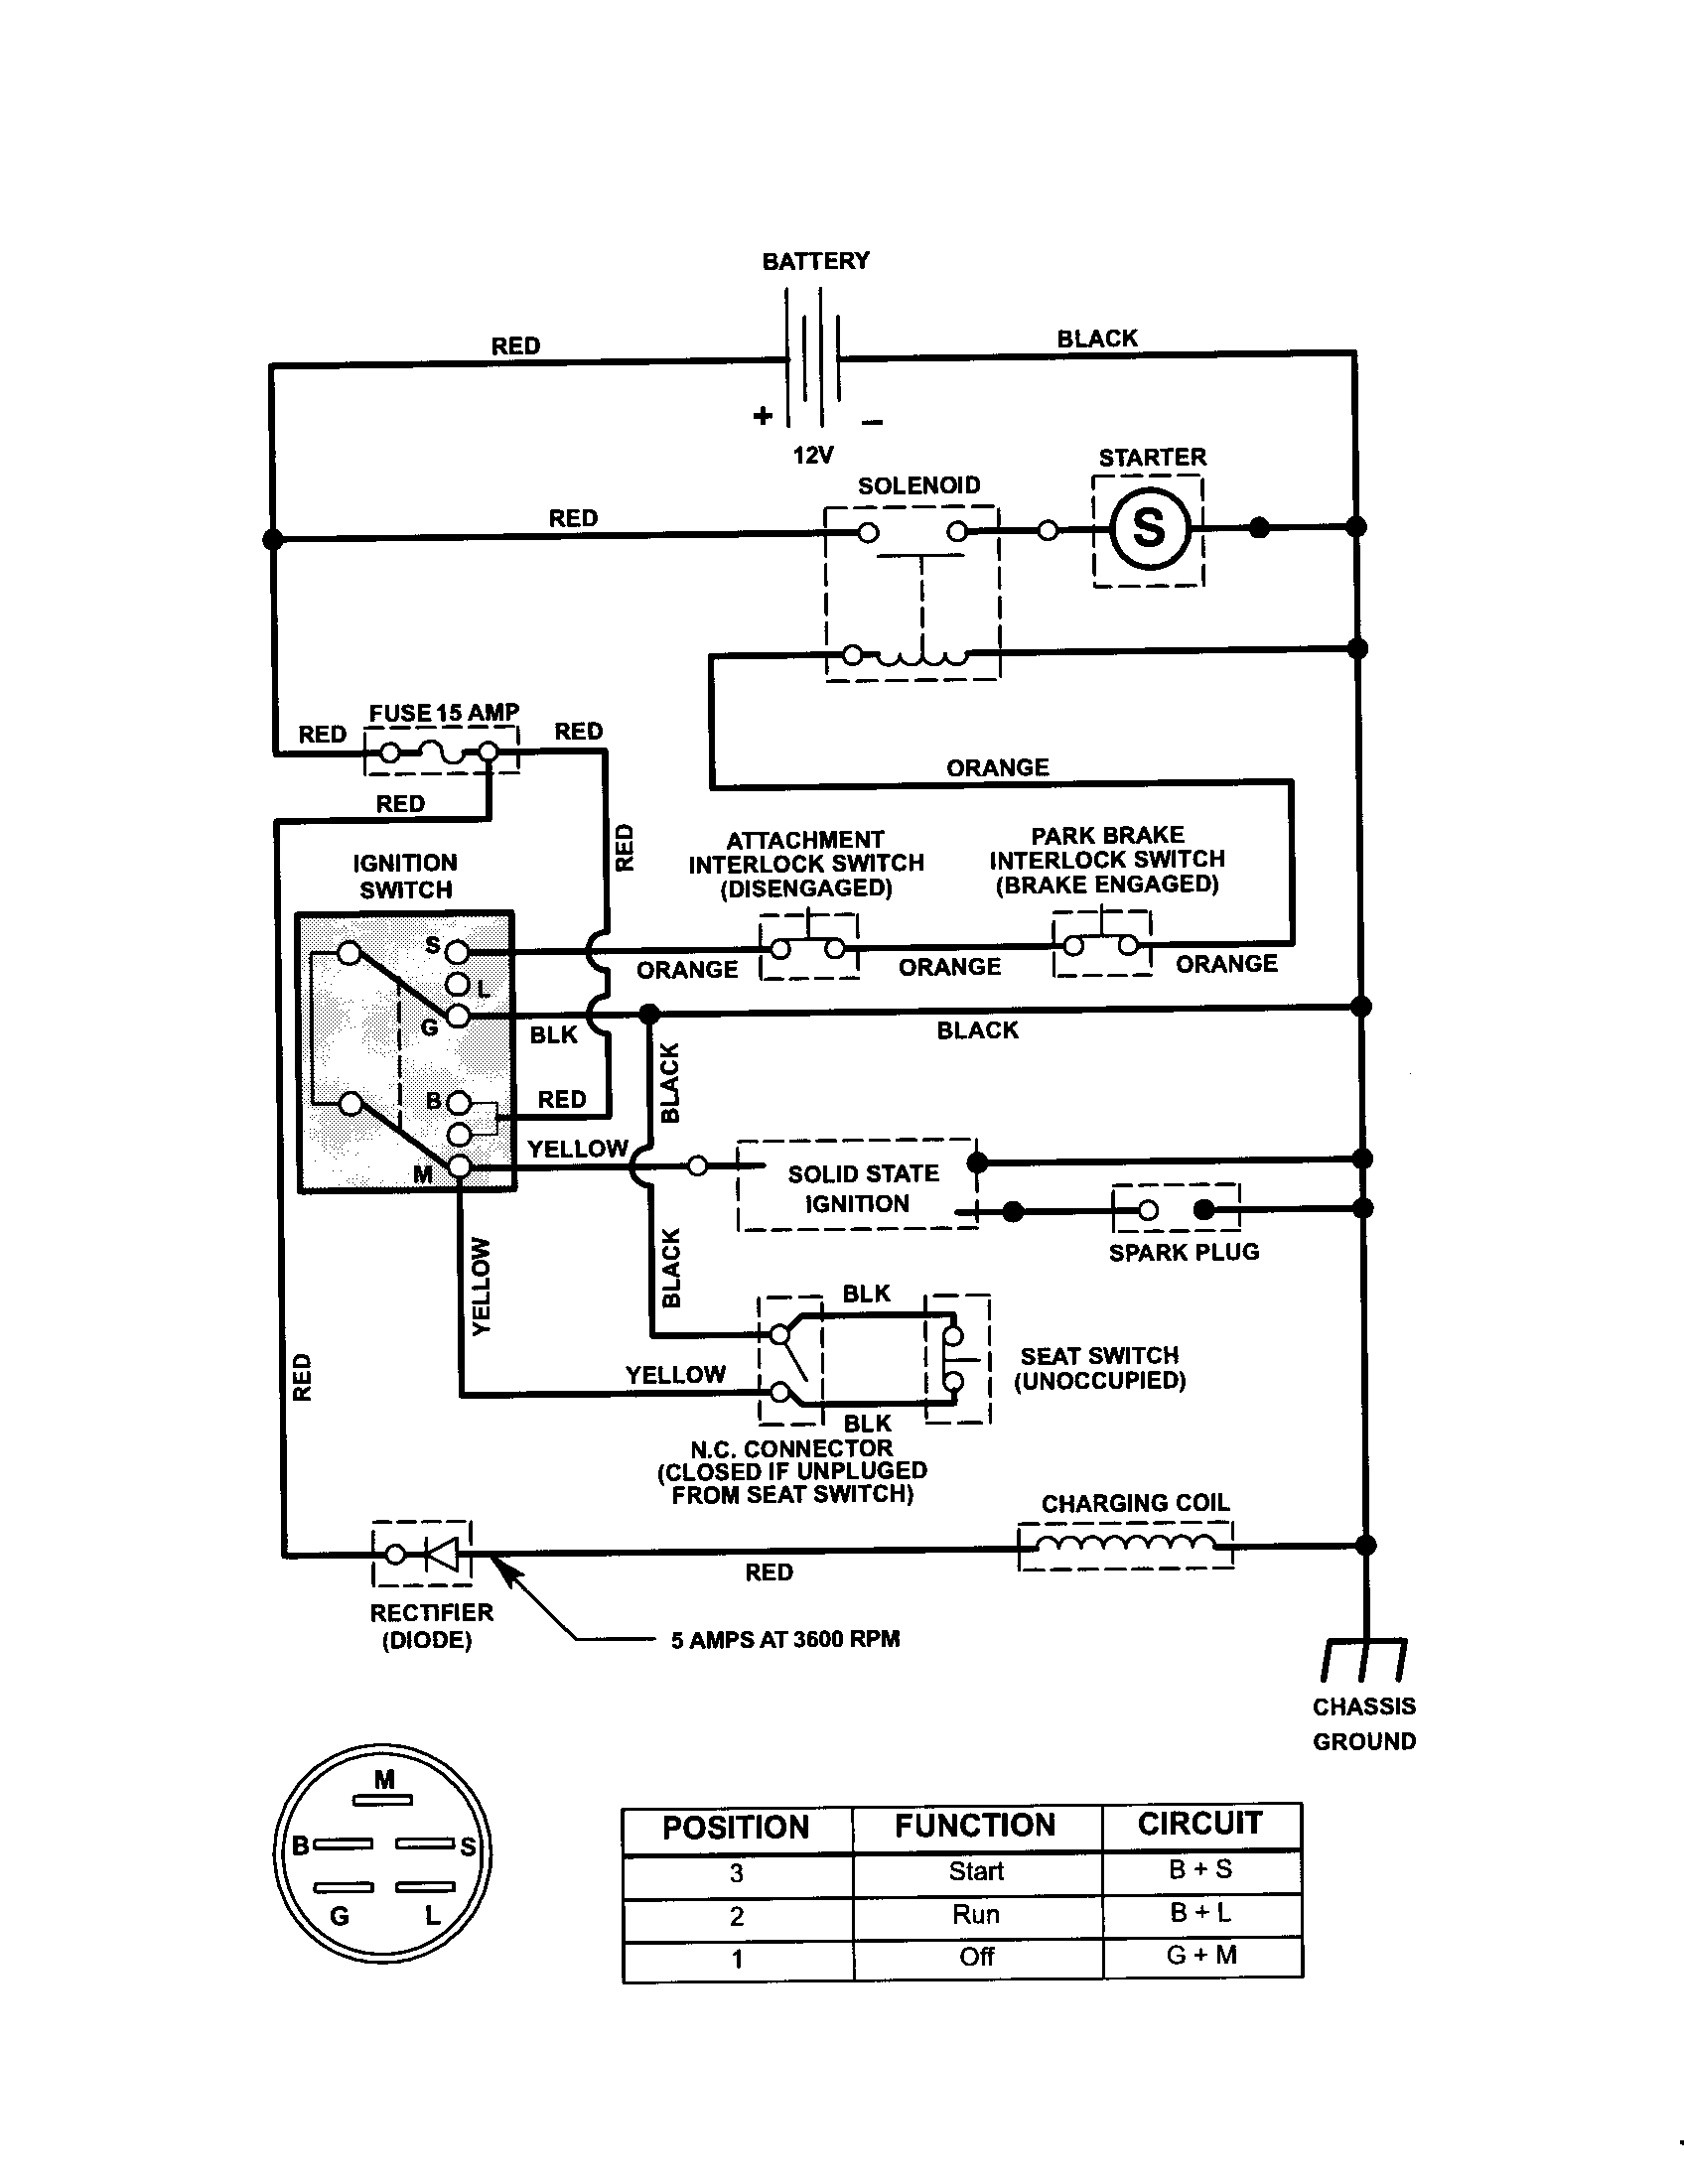 1b4fc64e2bcb7b381848942ff5c84dce craftsman riding mower electrical diagram pictures of craftsman wiring diagram for sears riding mower at suagrazia.org